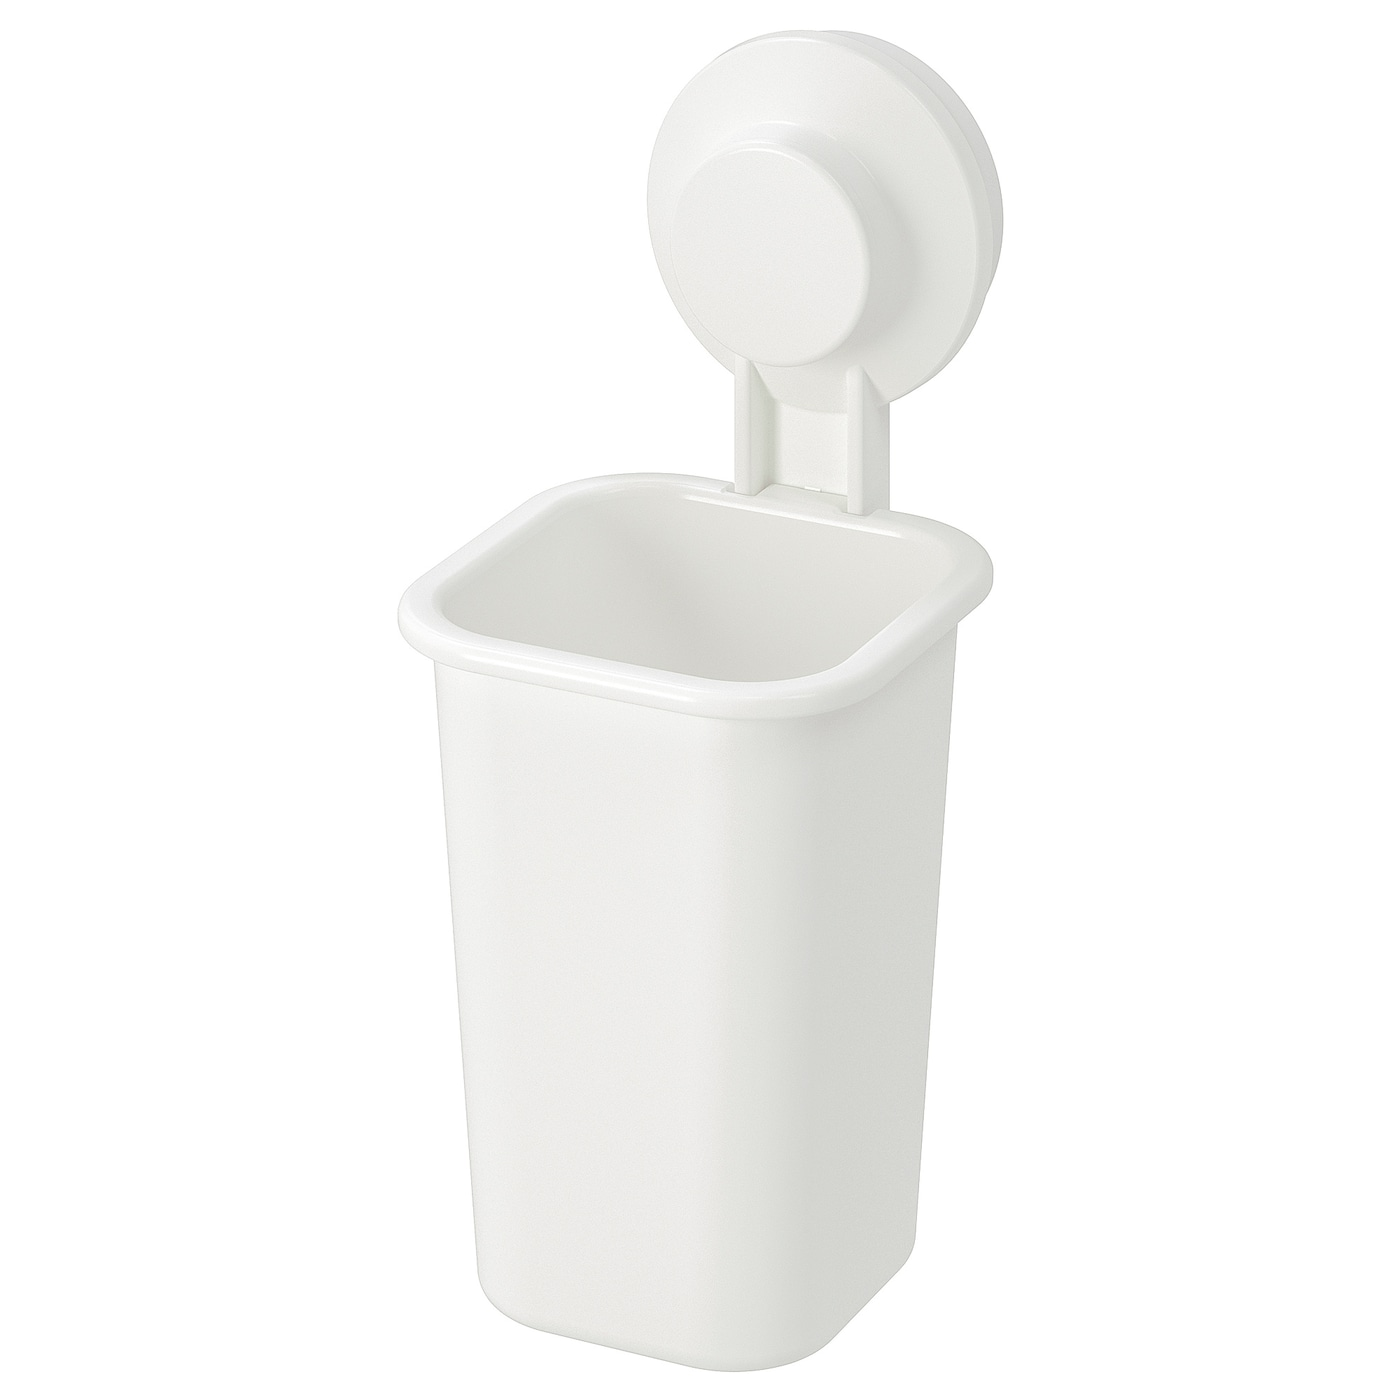 TISKEN white, Toothbrush holder with